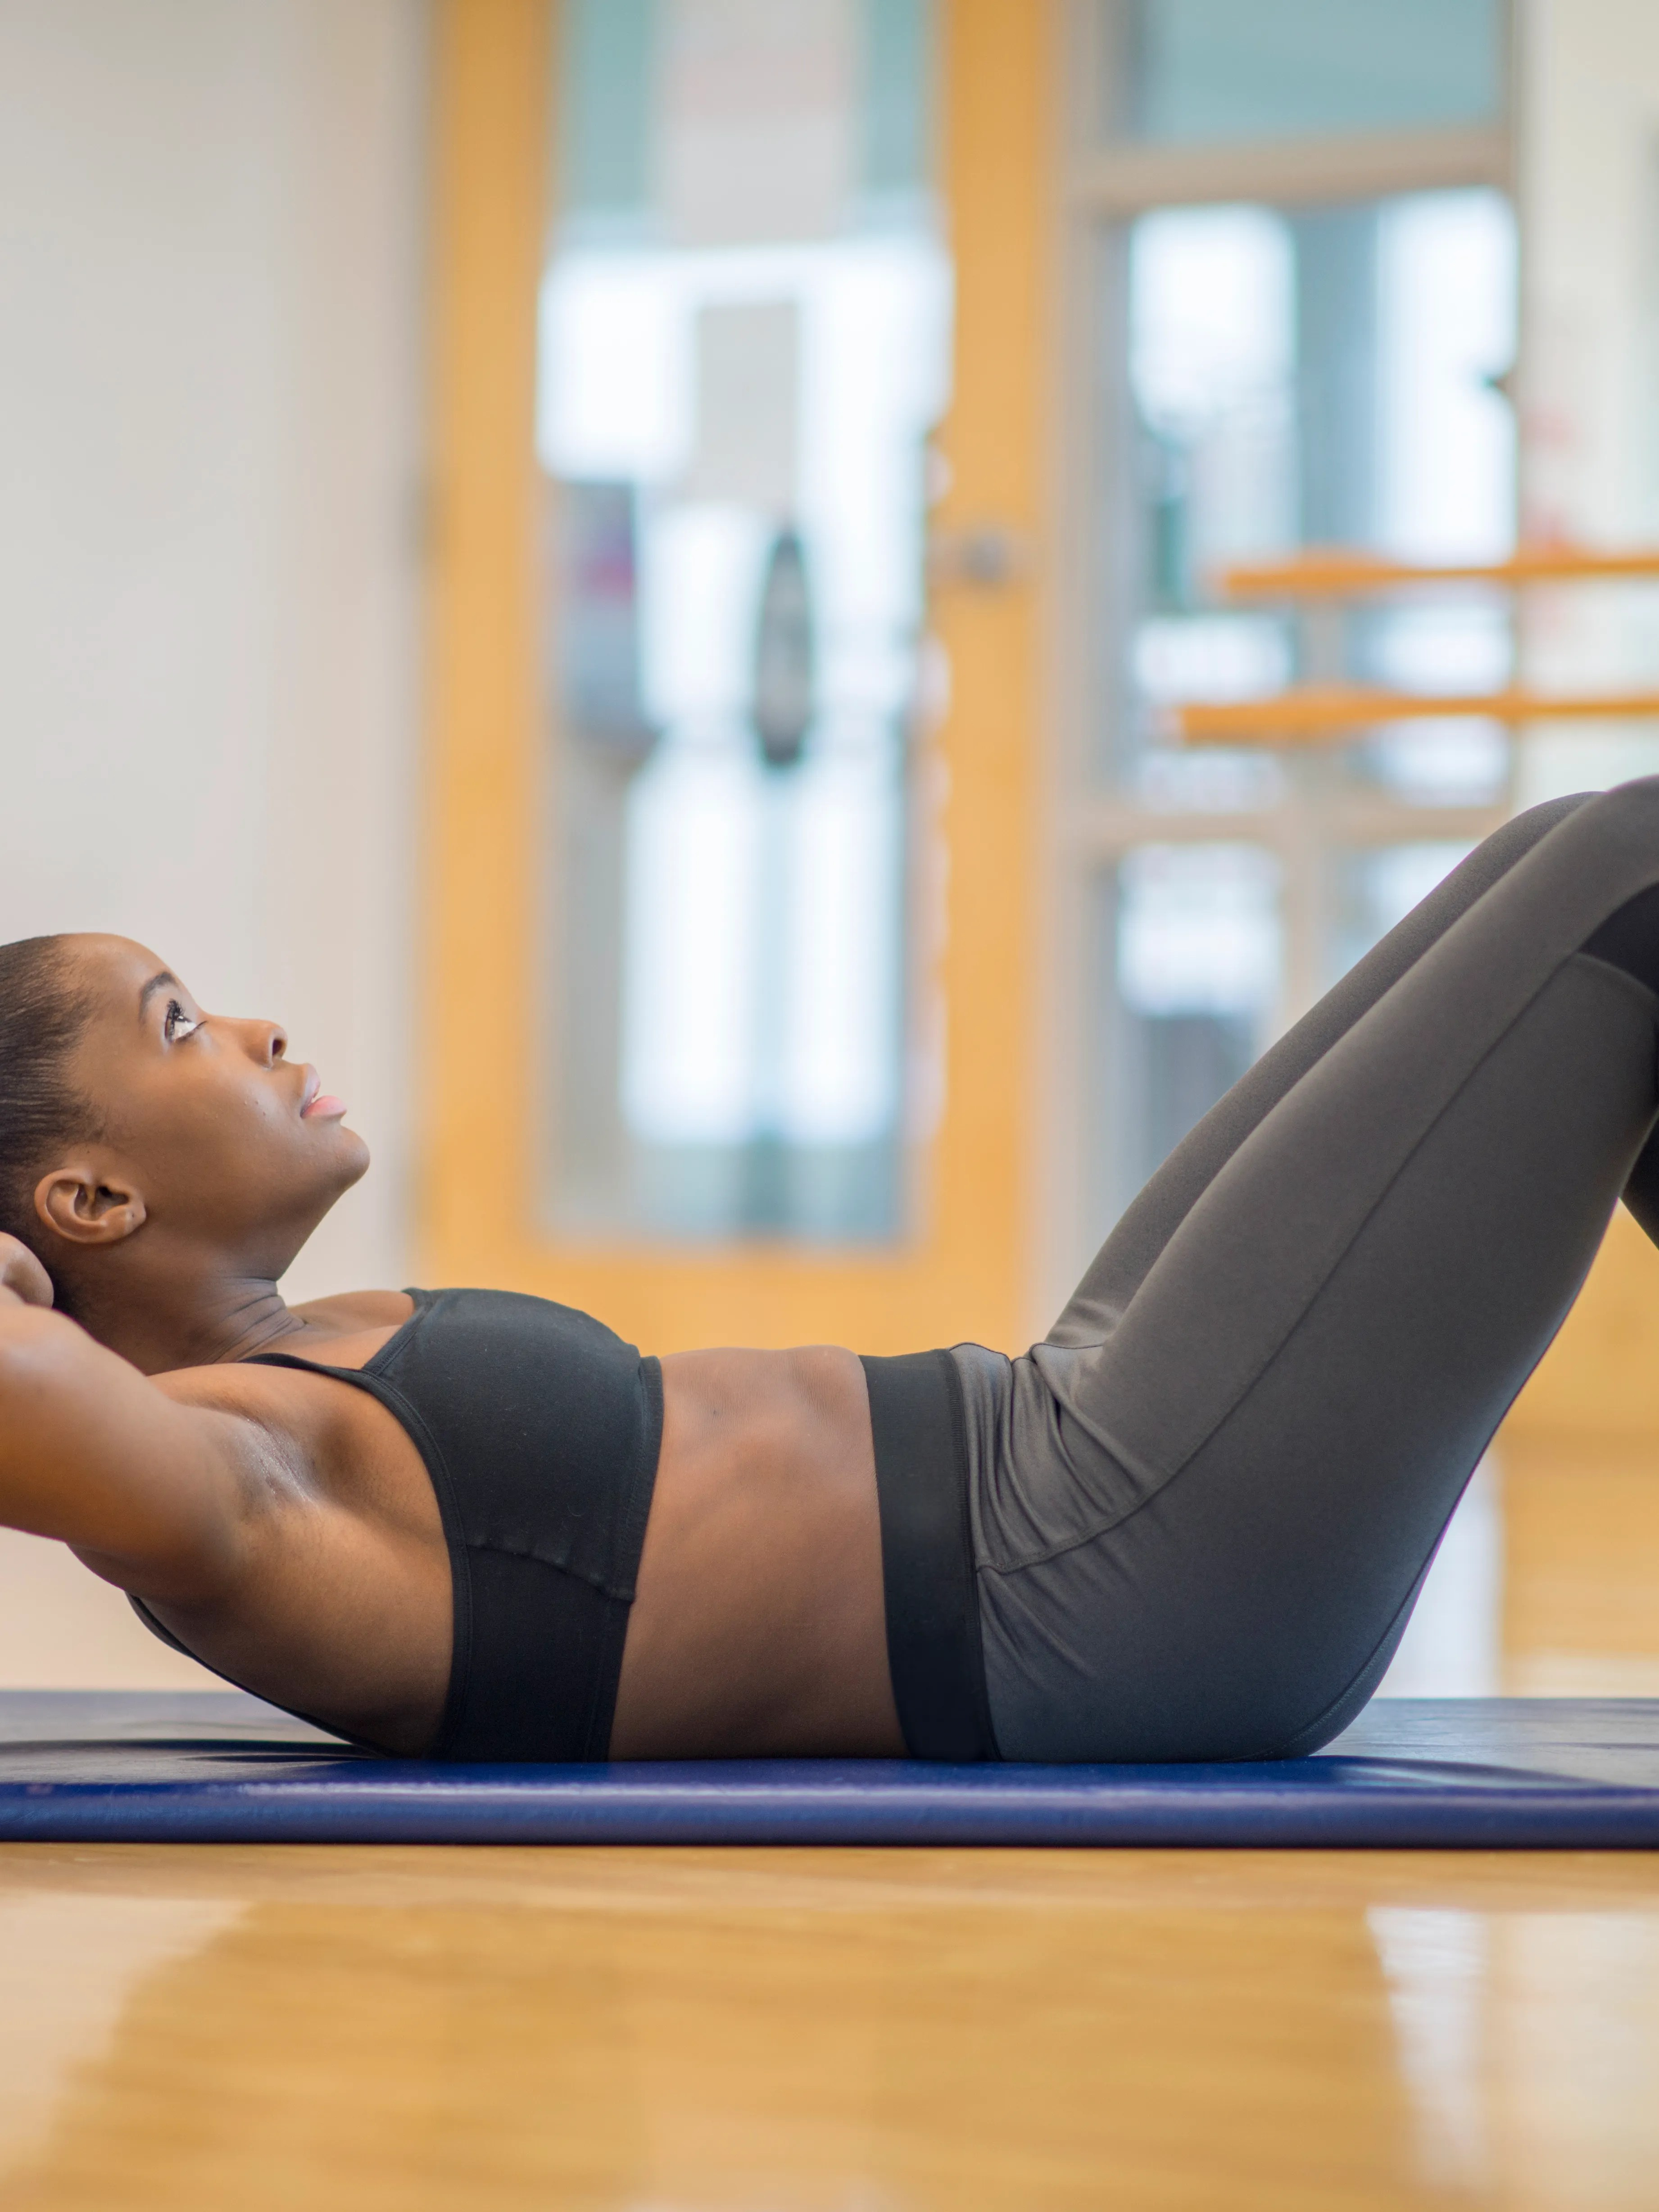 Daily Abs Exercise Is Good Or Bad